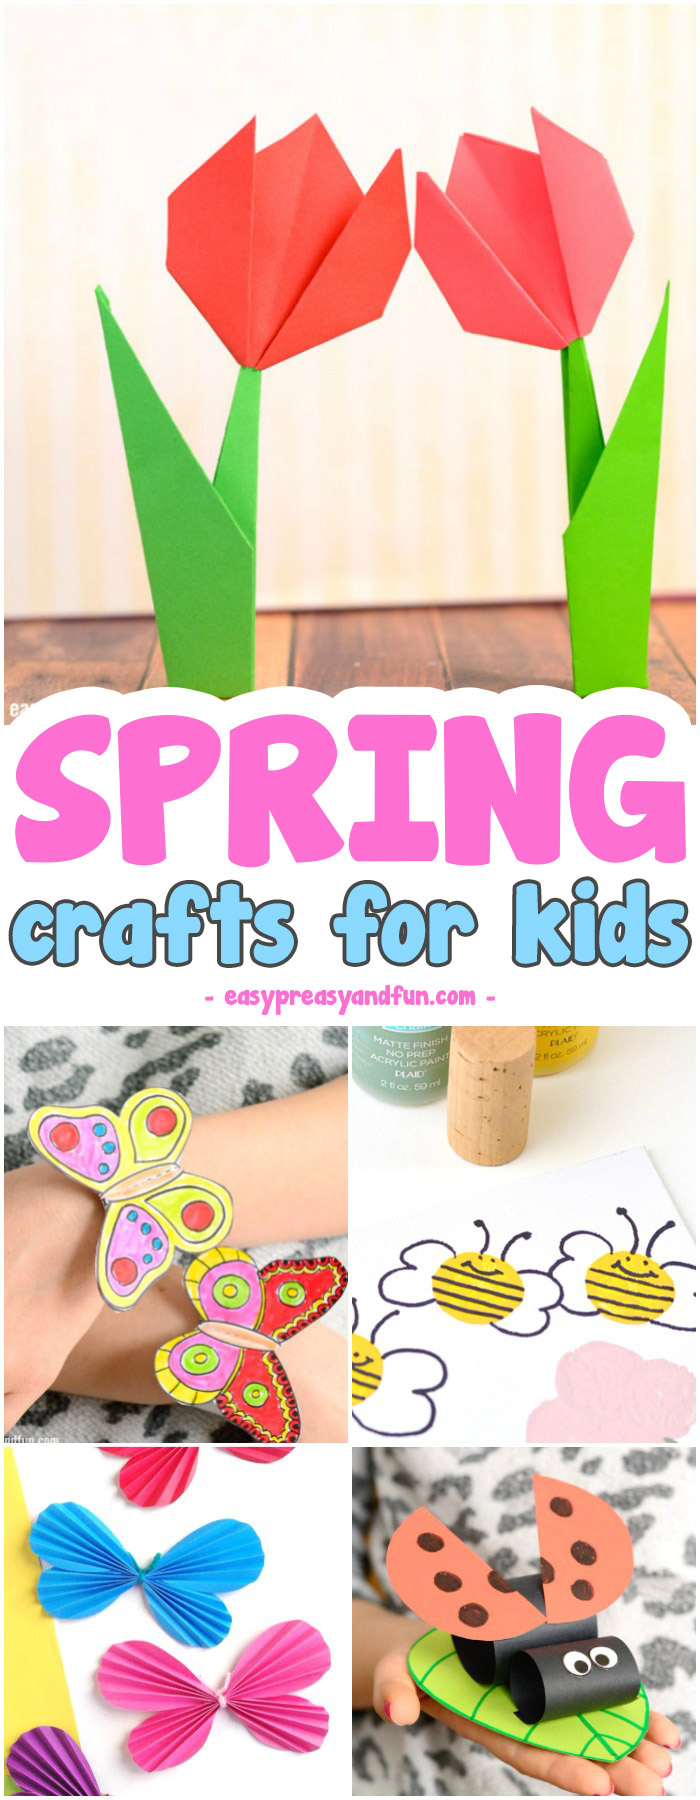 Super Fun Spring Crafts For Kids Craft Ideas And With Printable Templates